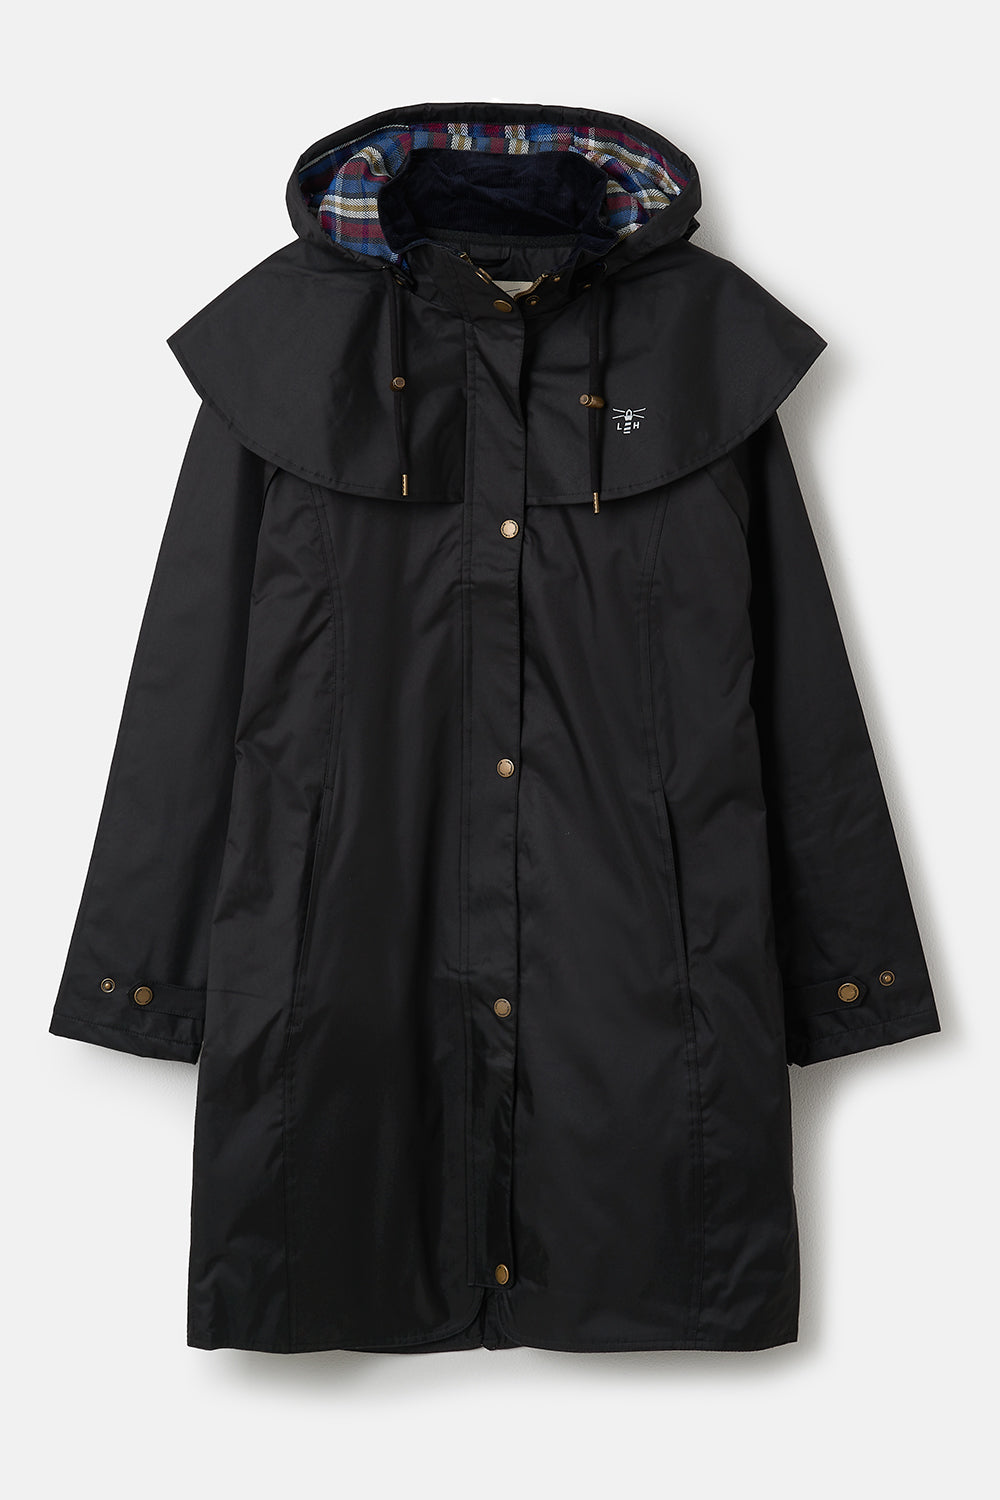 Lighthouse Outrider Womens 3/4 Length Waterproof Raincoat - Black